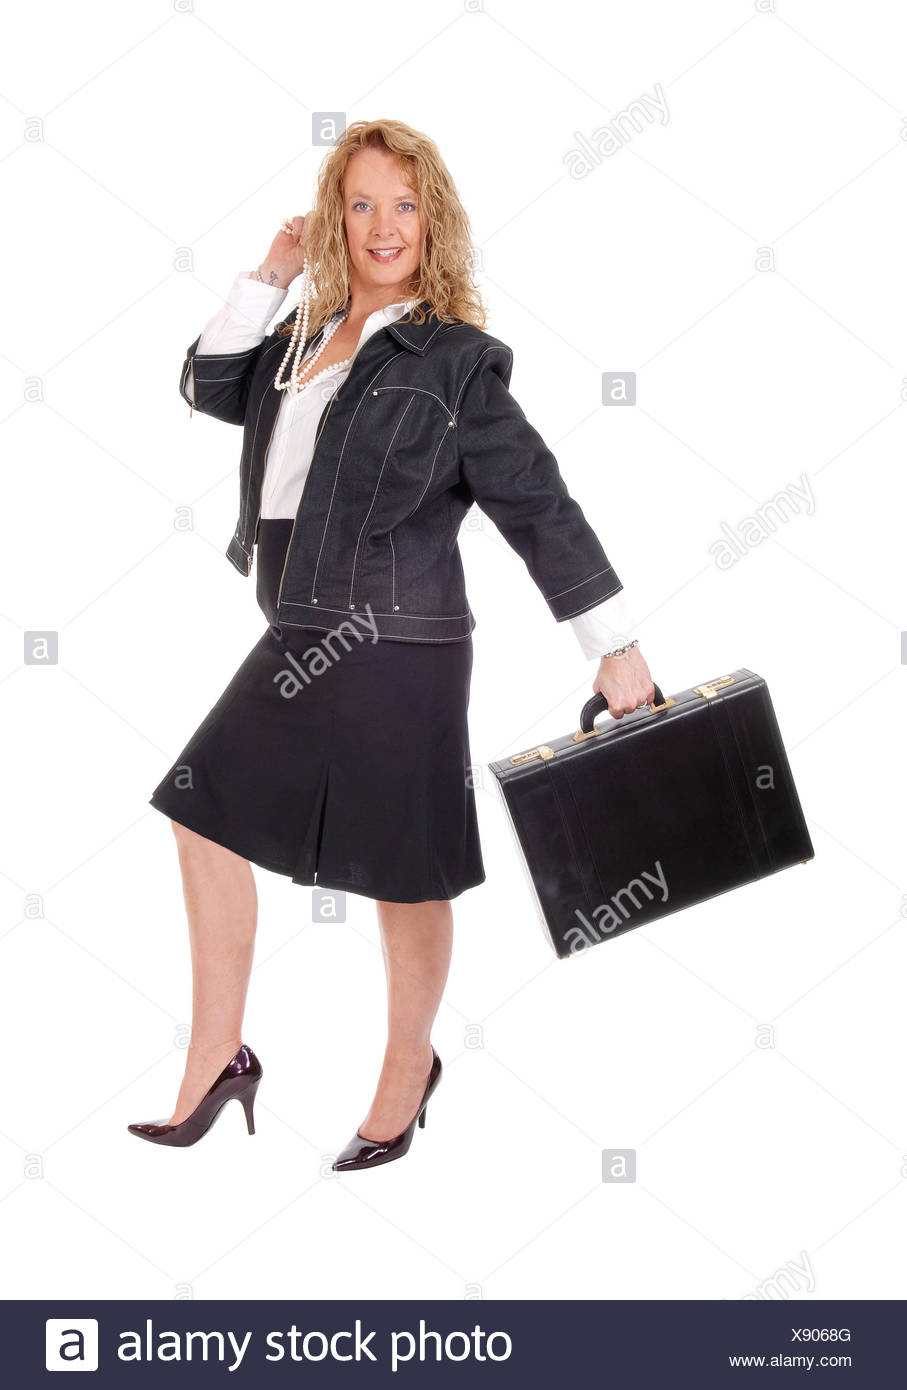 Business woman walking with briefcase. - Stock Image